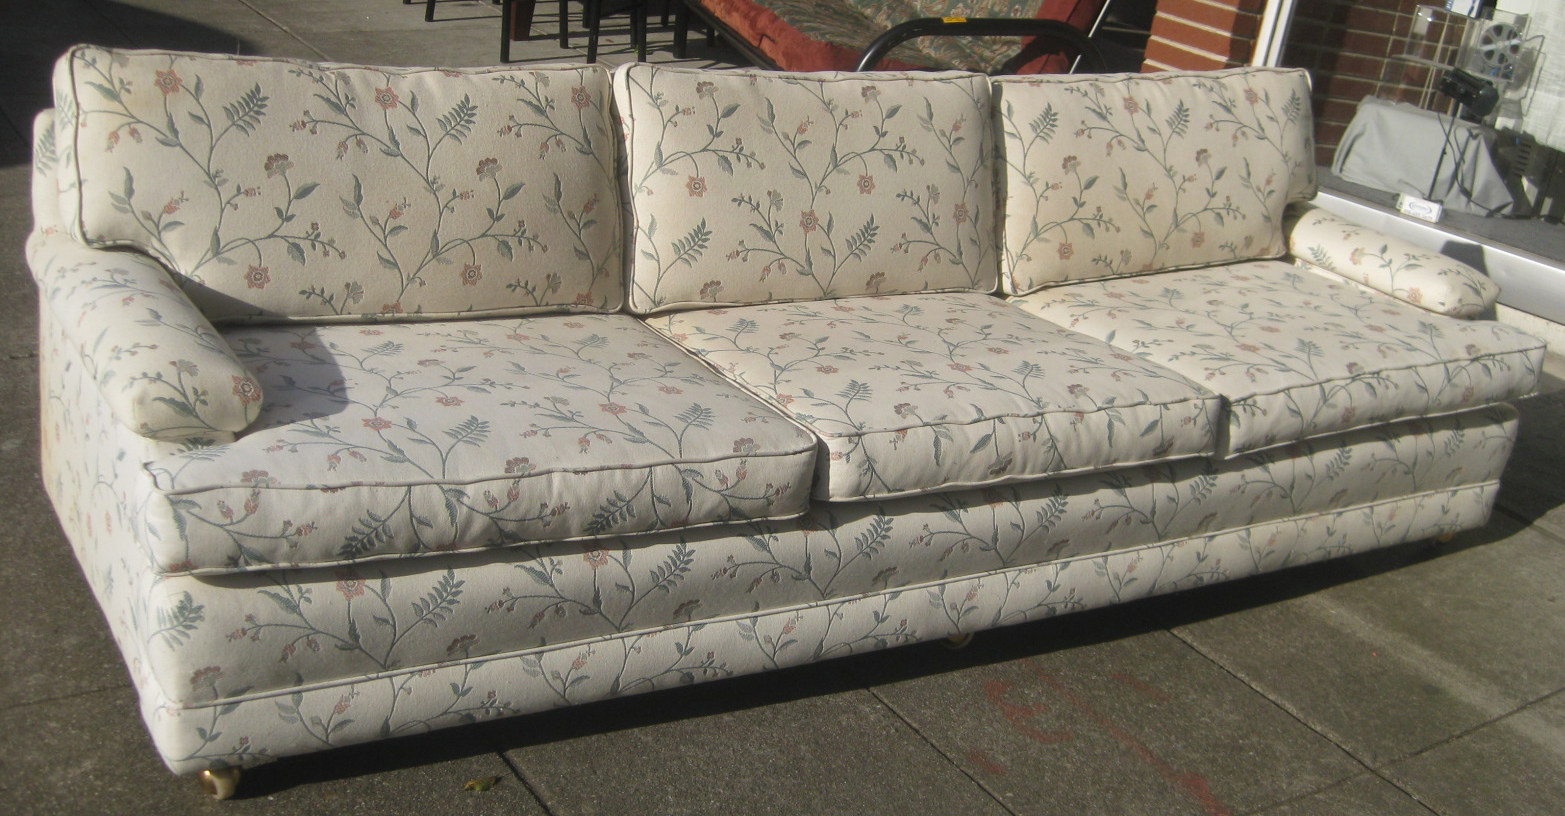 Uhuru furniture collectibles sold eight foot long for 8 foot couch